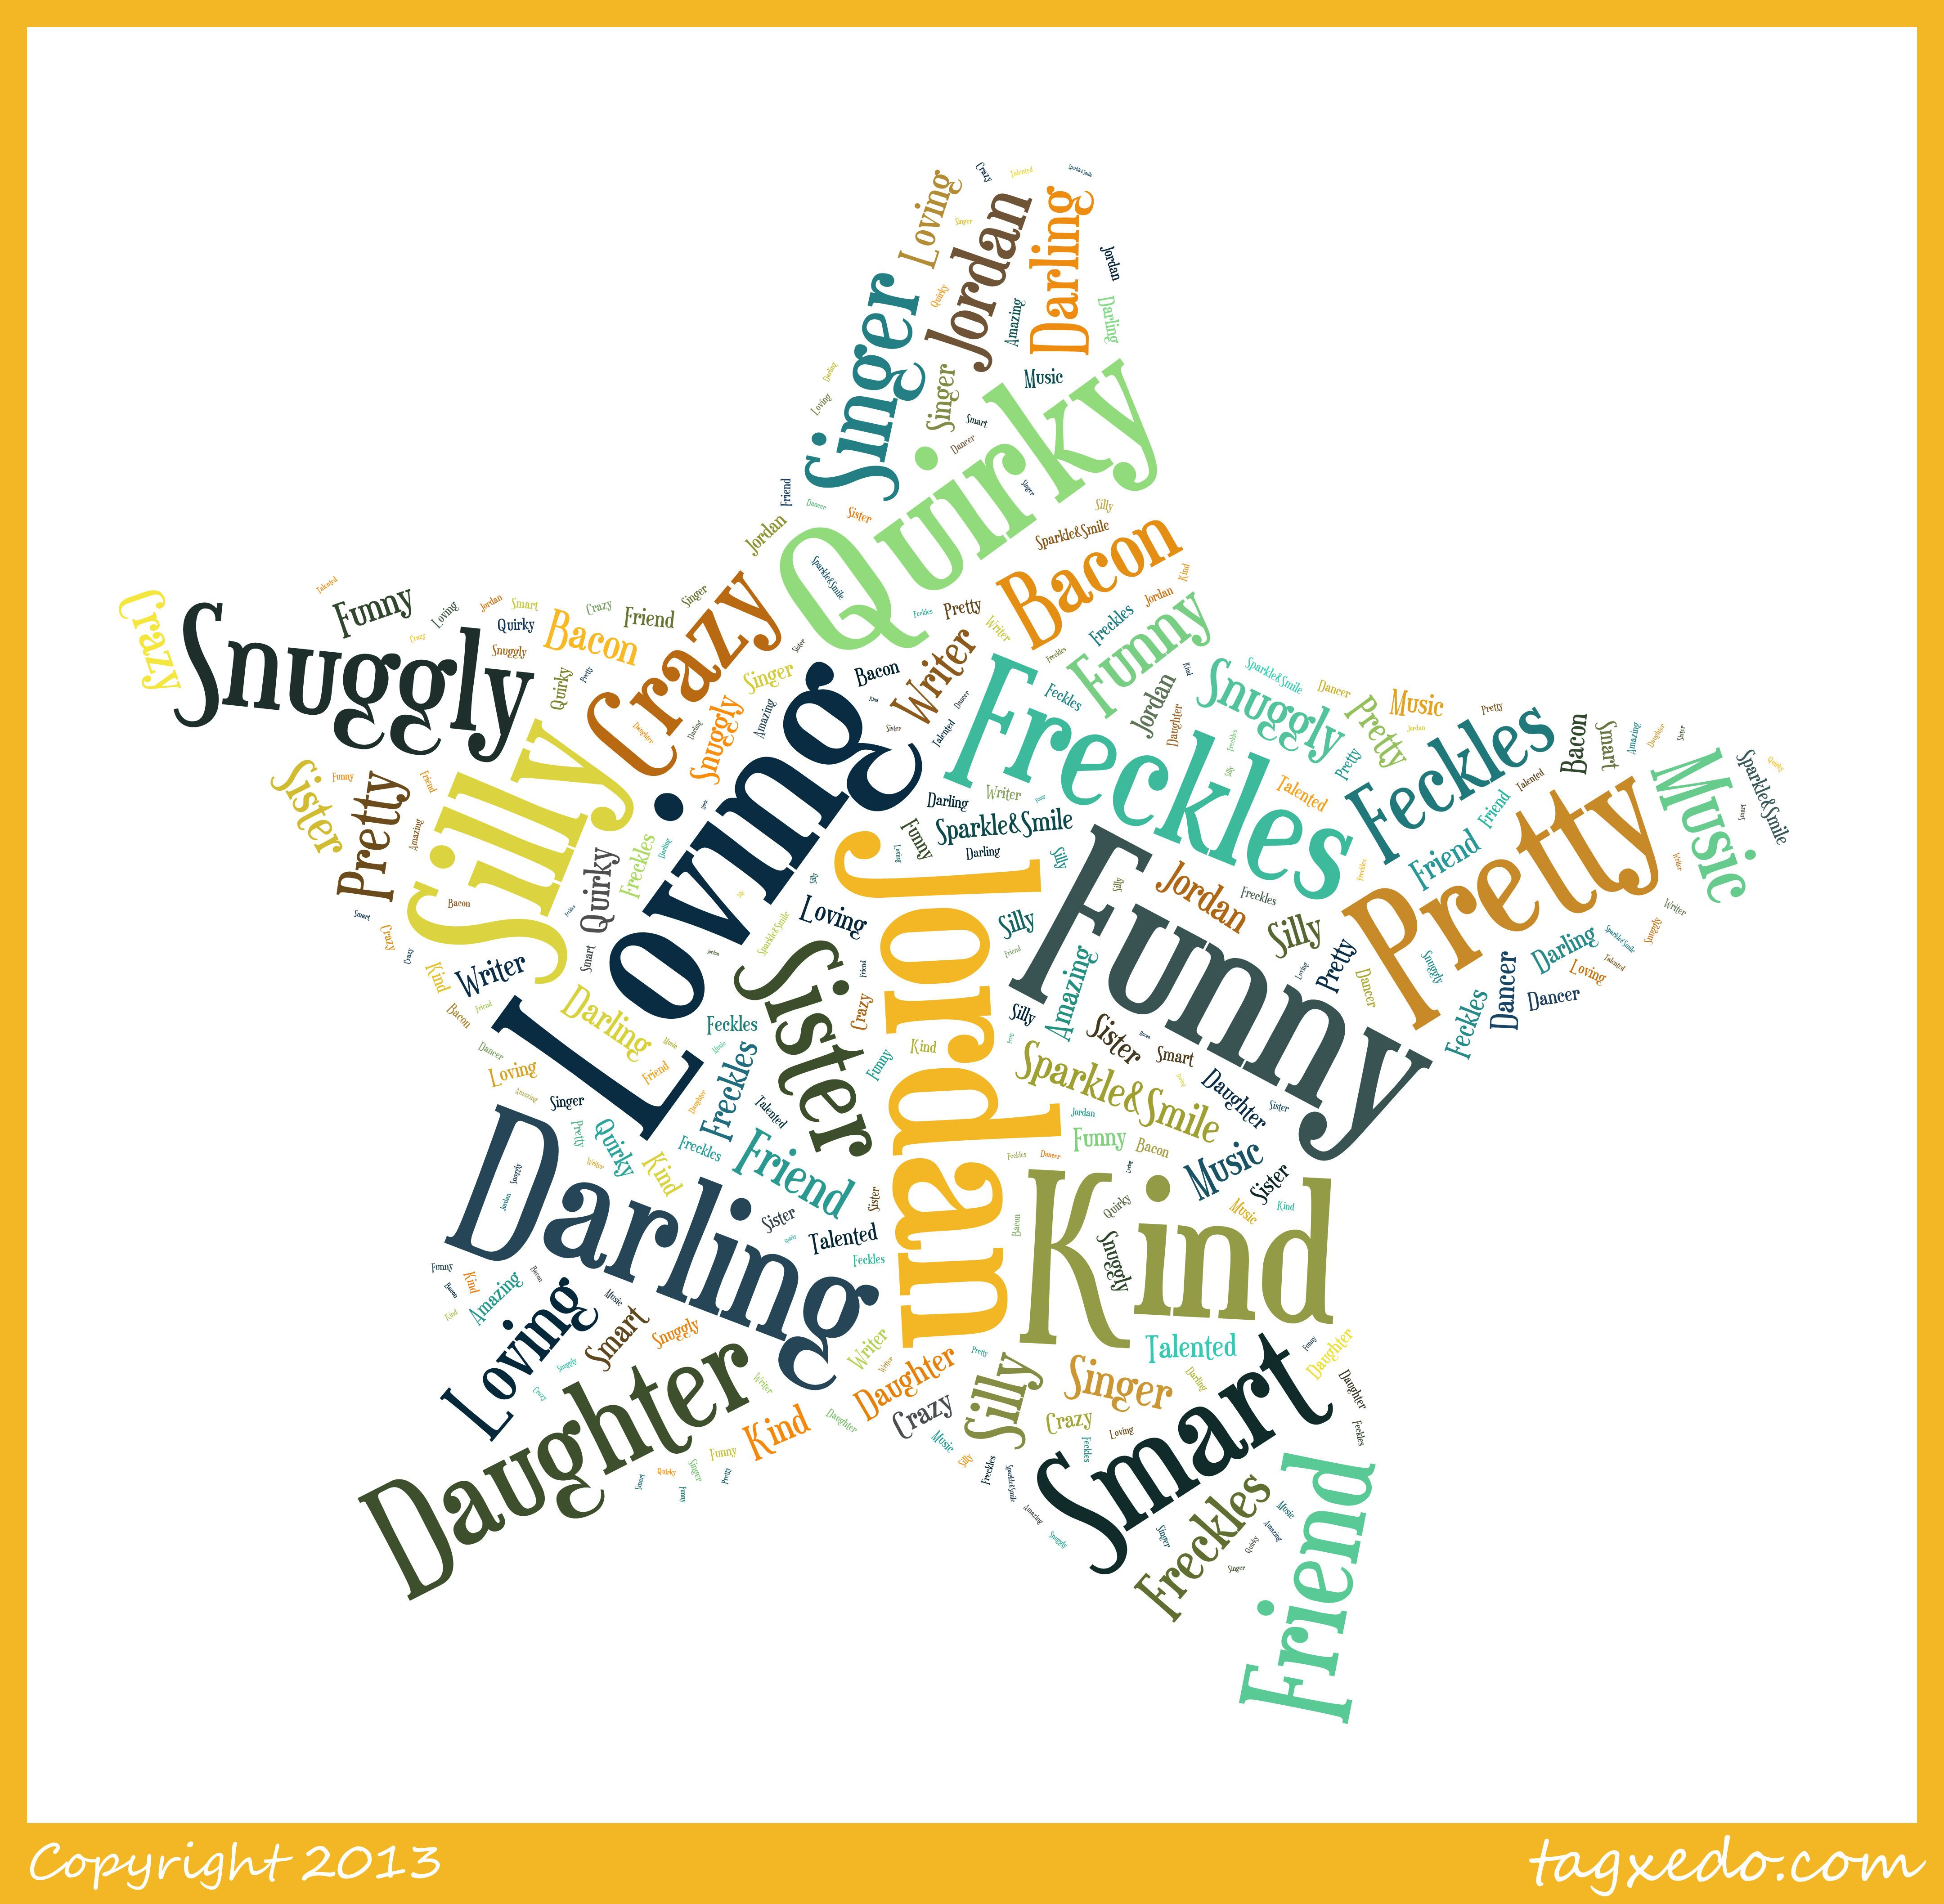 Tagxedo craft ideas pinterest tagxedo grandkids and craft program can create graphic with any words colors shape that you chose tagxedo publicscrutiny Choice Image